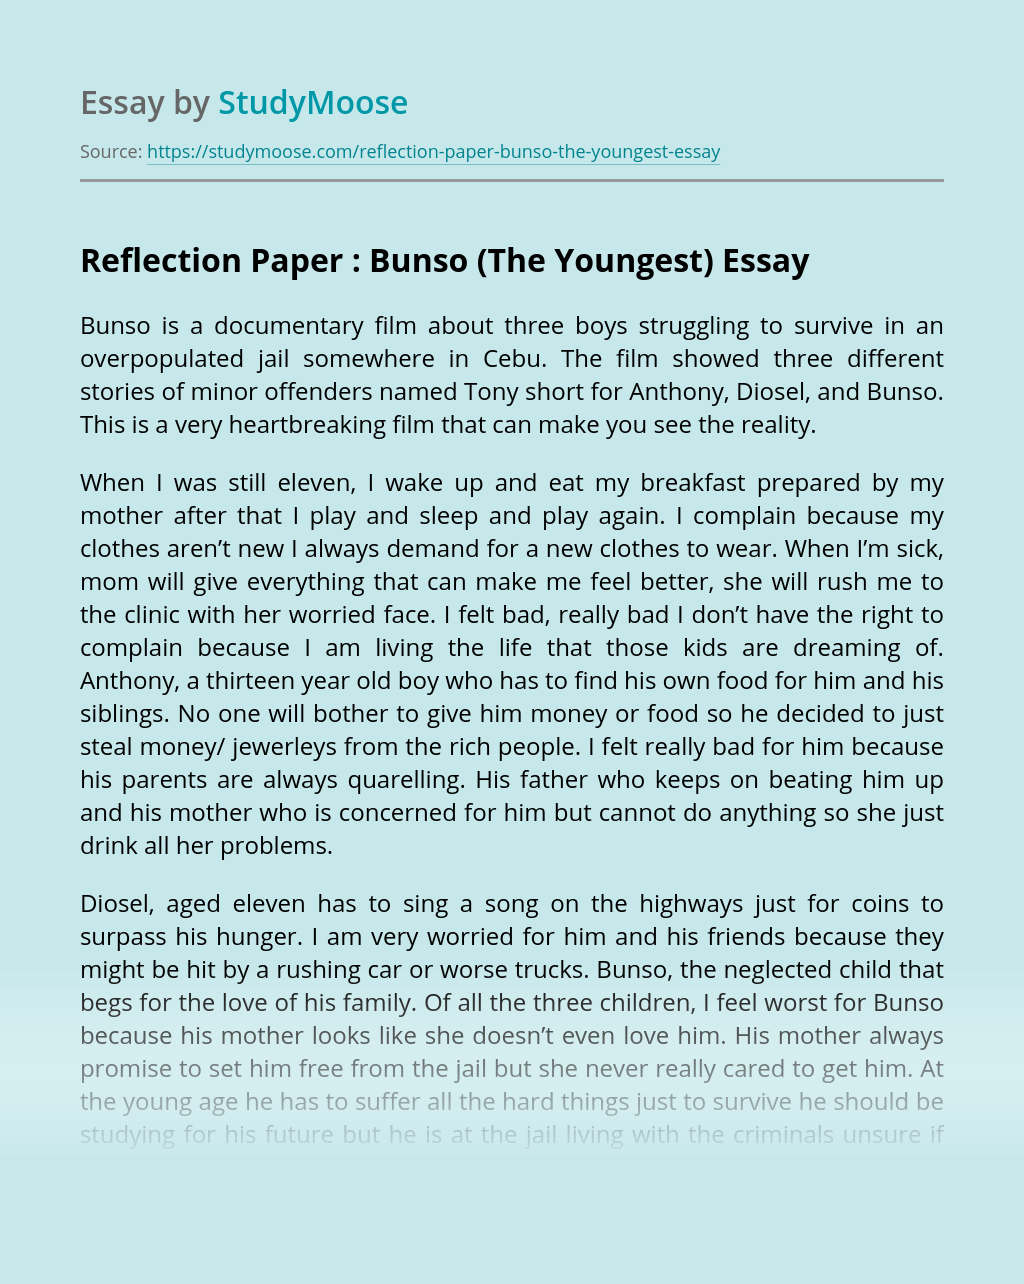 Reflection Paper : Bunso (The Youngest)